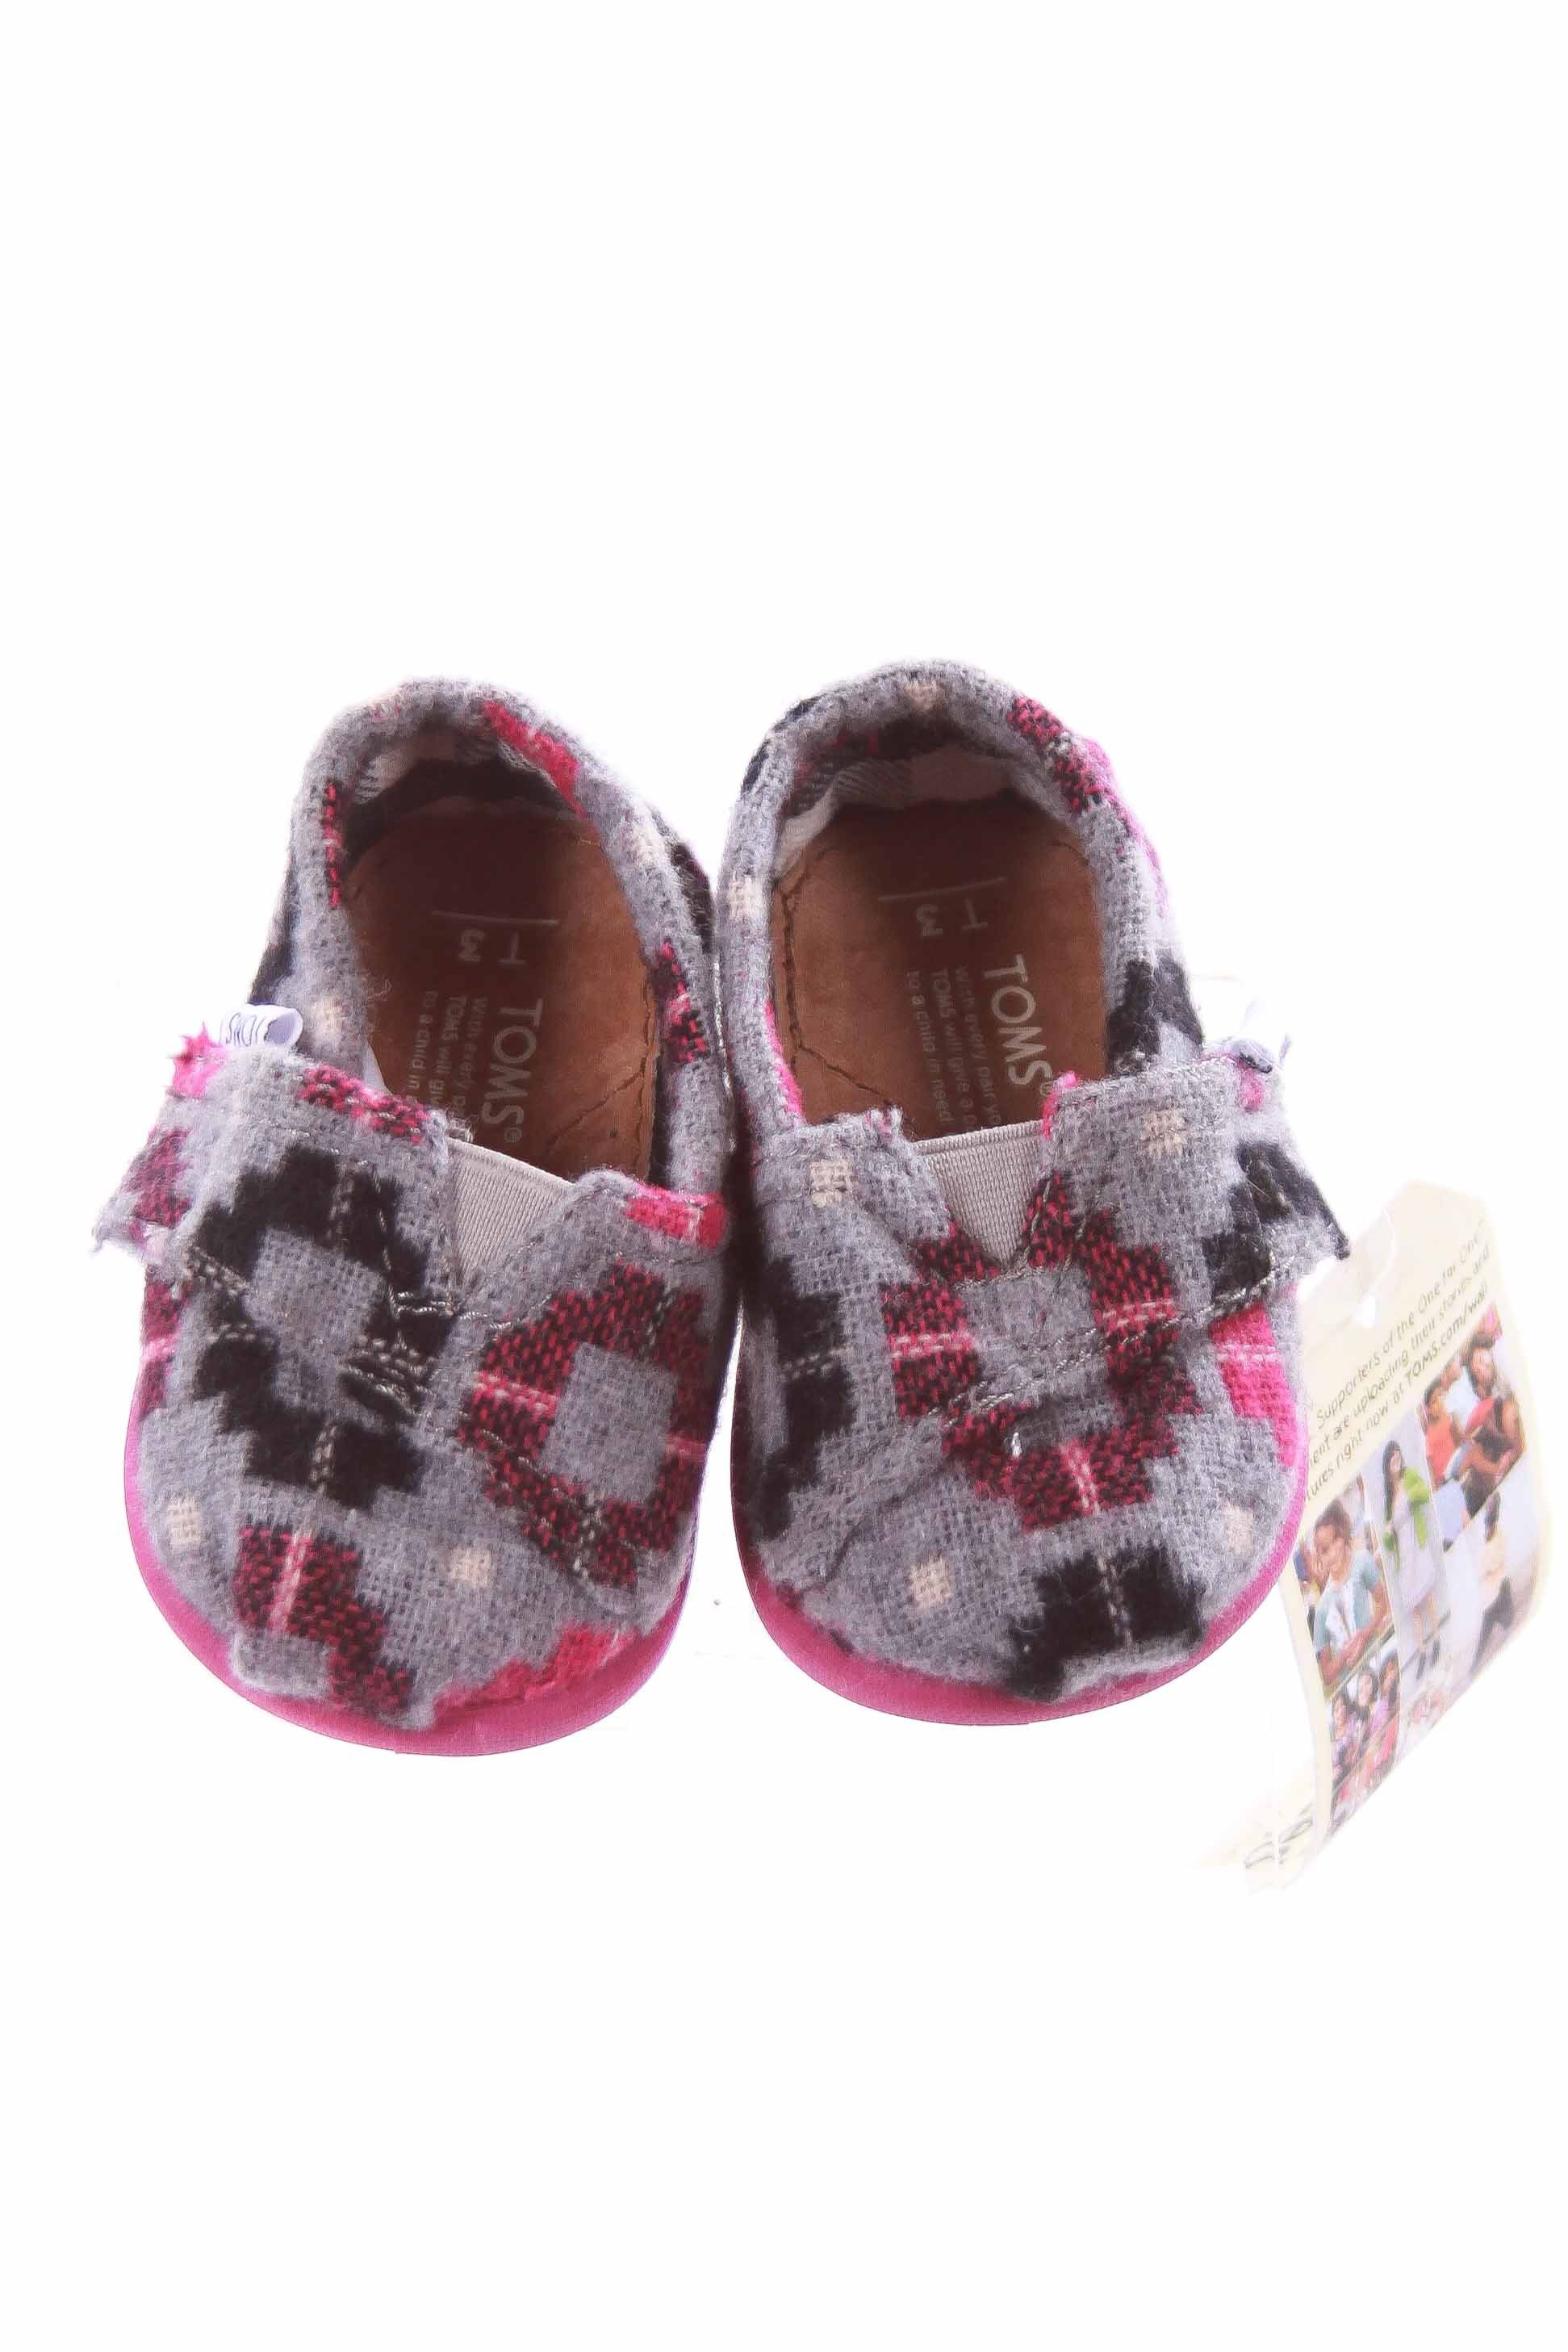 TOMS GRAY, BLACK AND PINK PATTERN SHOES INFANT SIZE 3 *NWT